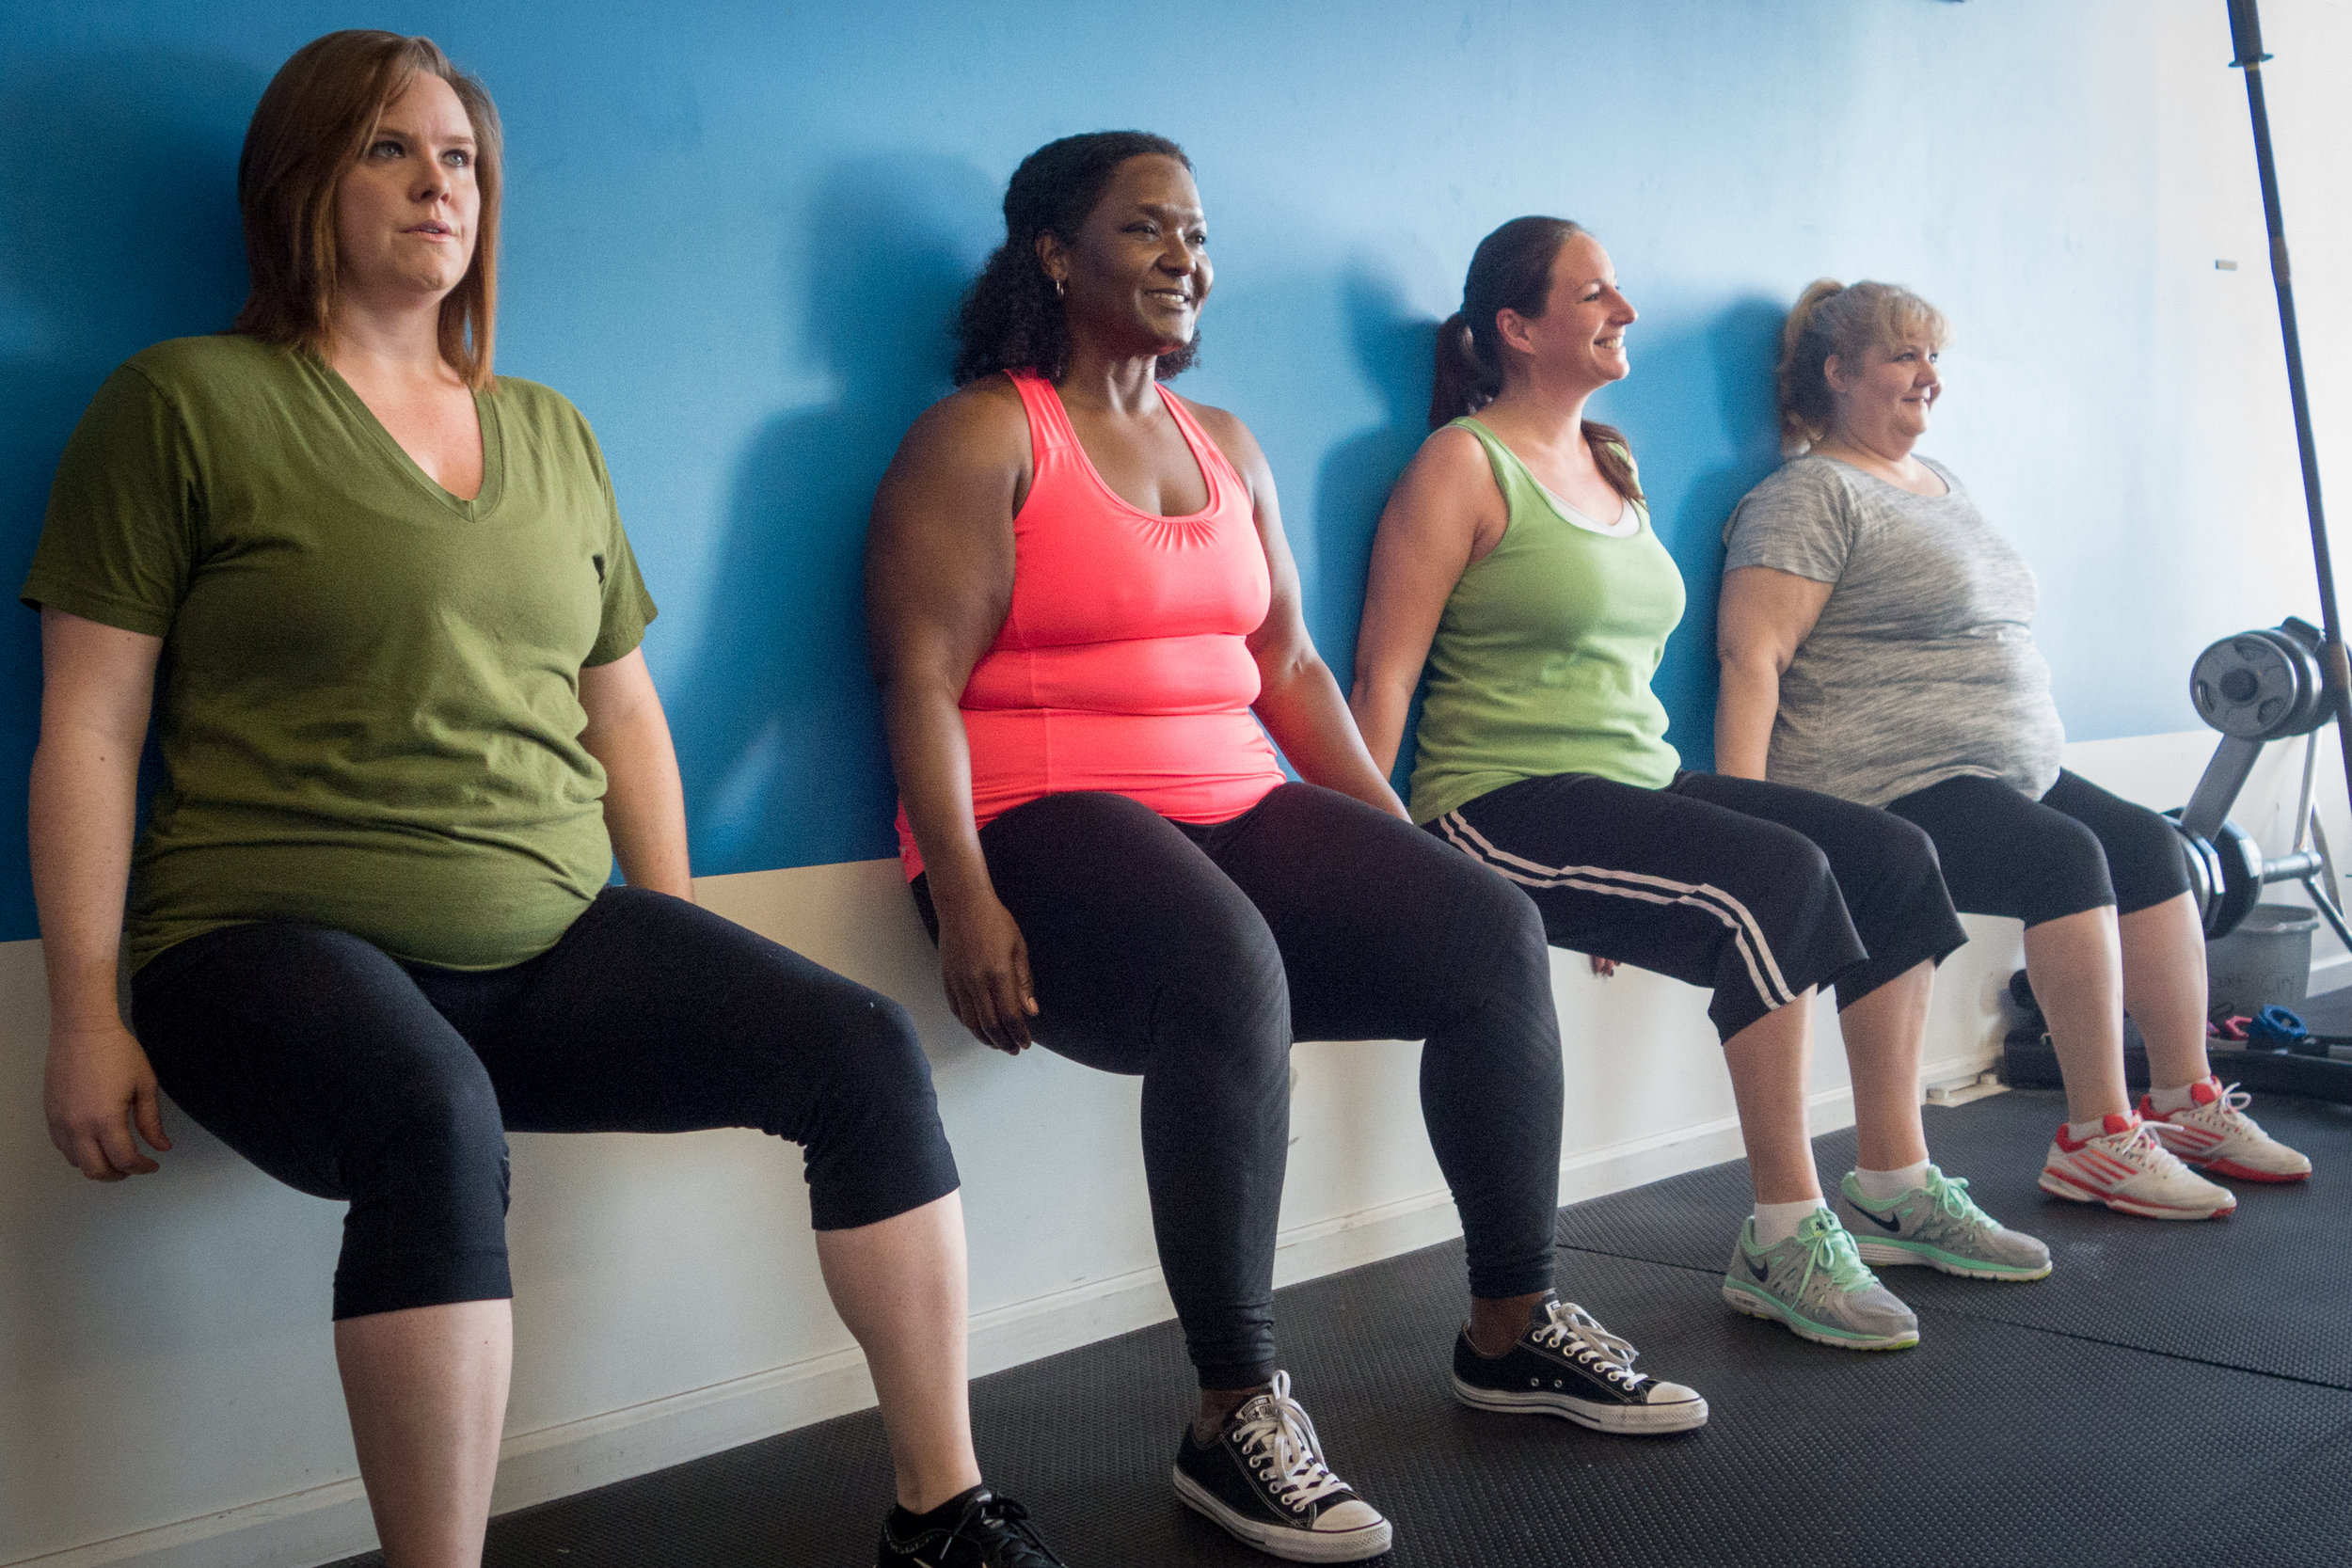 Colleyville body positive fitness